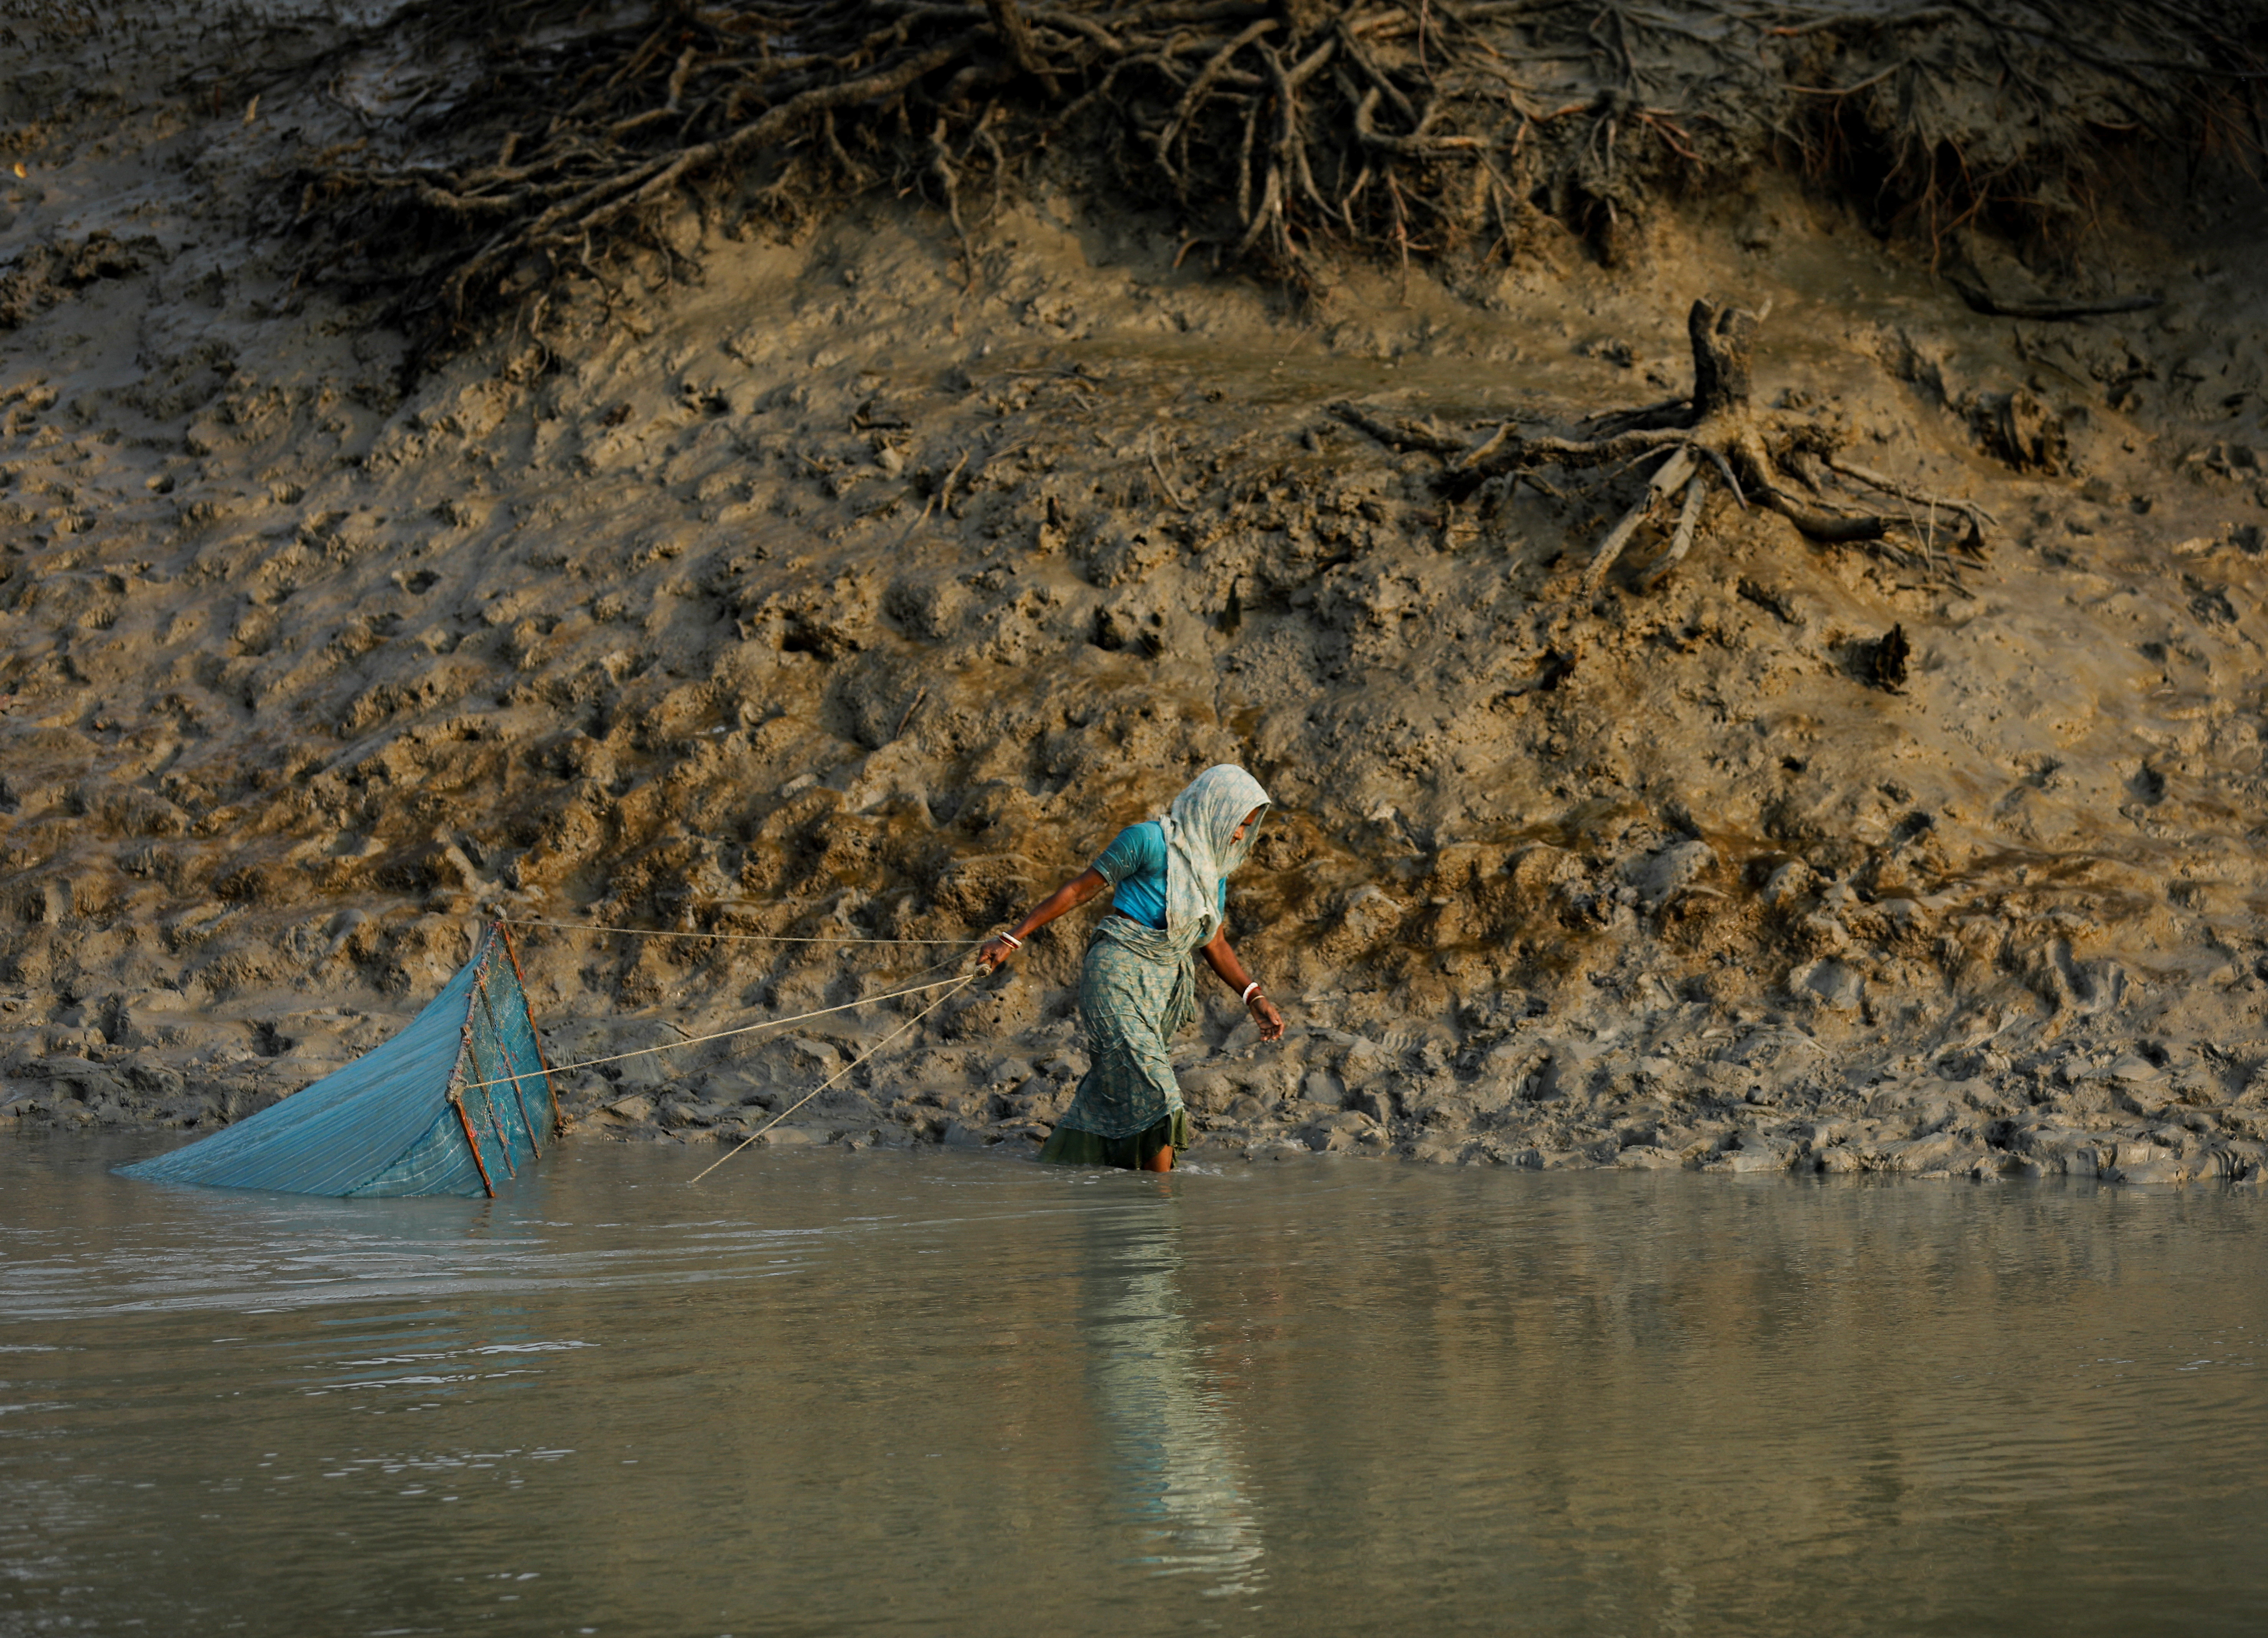 """A woman fishes along the banks of a river near the island of Satjelia in the Sundarbans, India, December 16, 2019. REUTERS/Anushree Fadnavis     SEARCH """"FADNAVIS SUNDARBANS"""" FOR THIS STORY. SEARCH """"WIDER IMAGE"""" FOR ALL STORIES. - RC2B7L9W7O1O"""